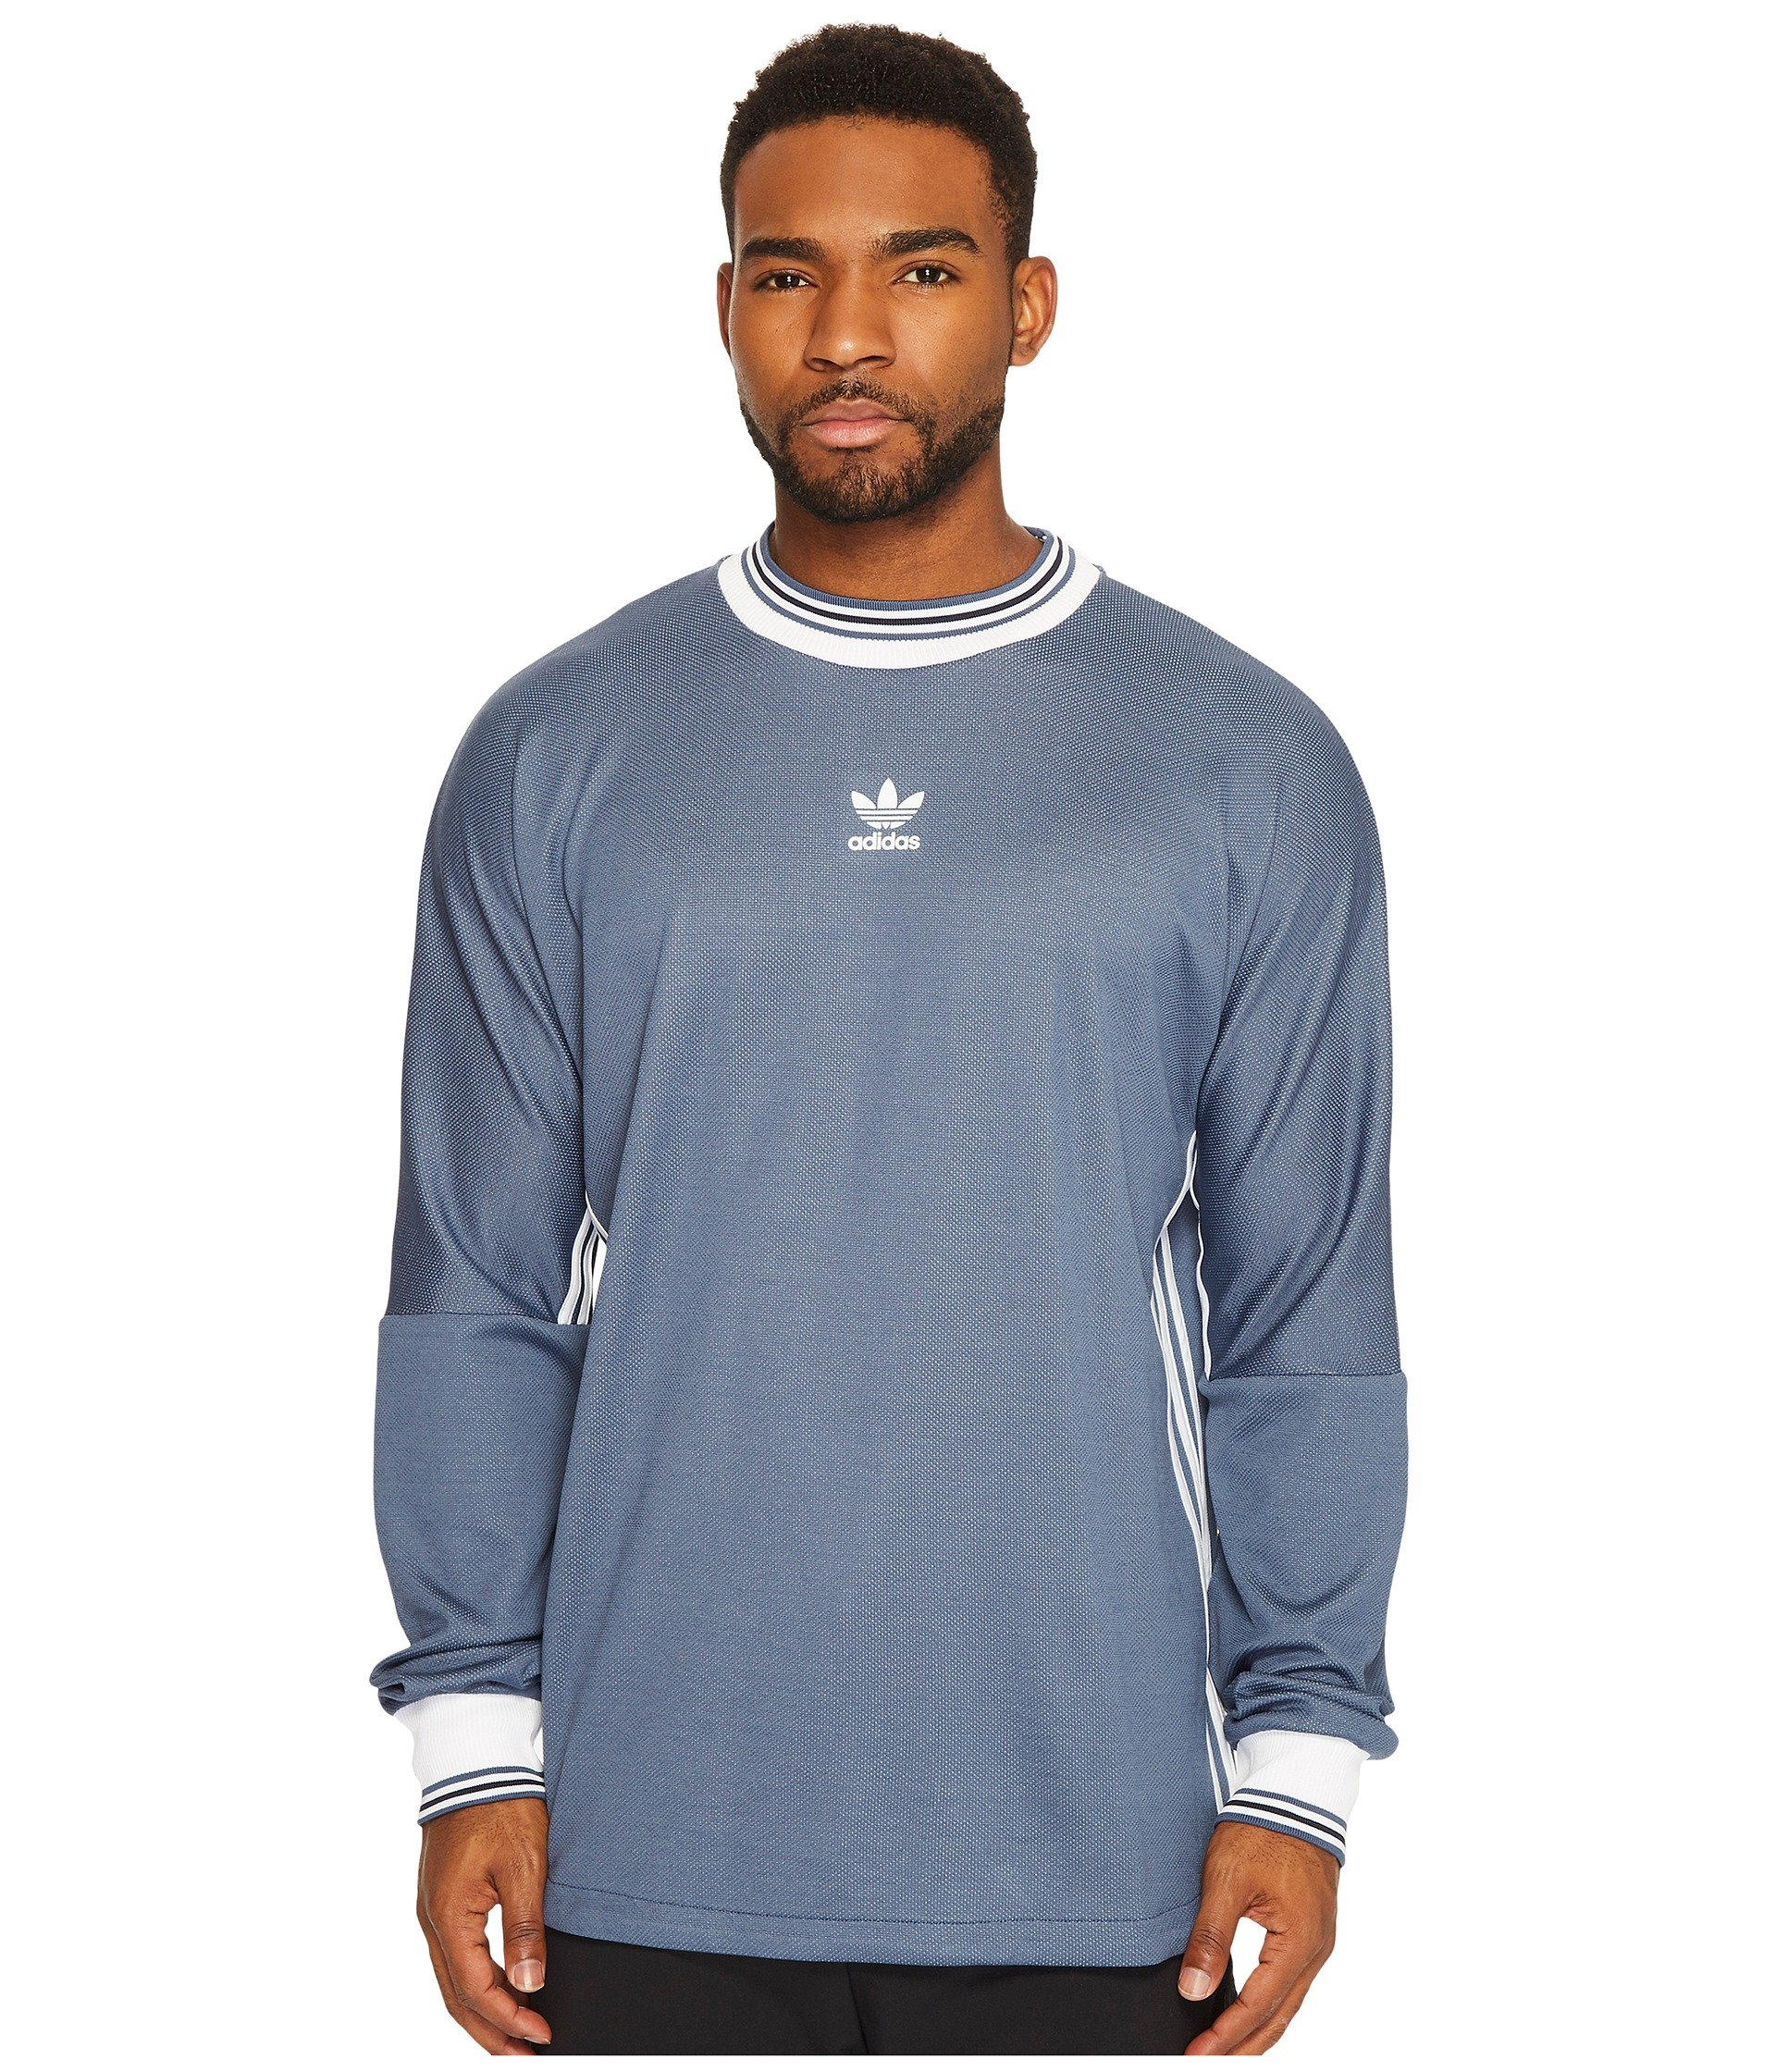 ADIDAS ORIGINALS LONG SLEEVE GOALIE JERSEY b4ac09f8f